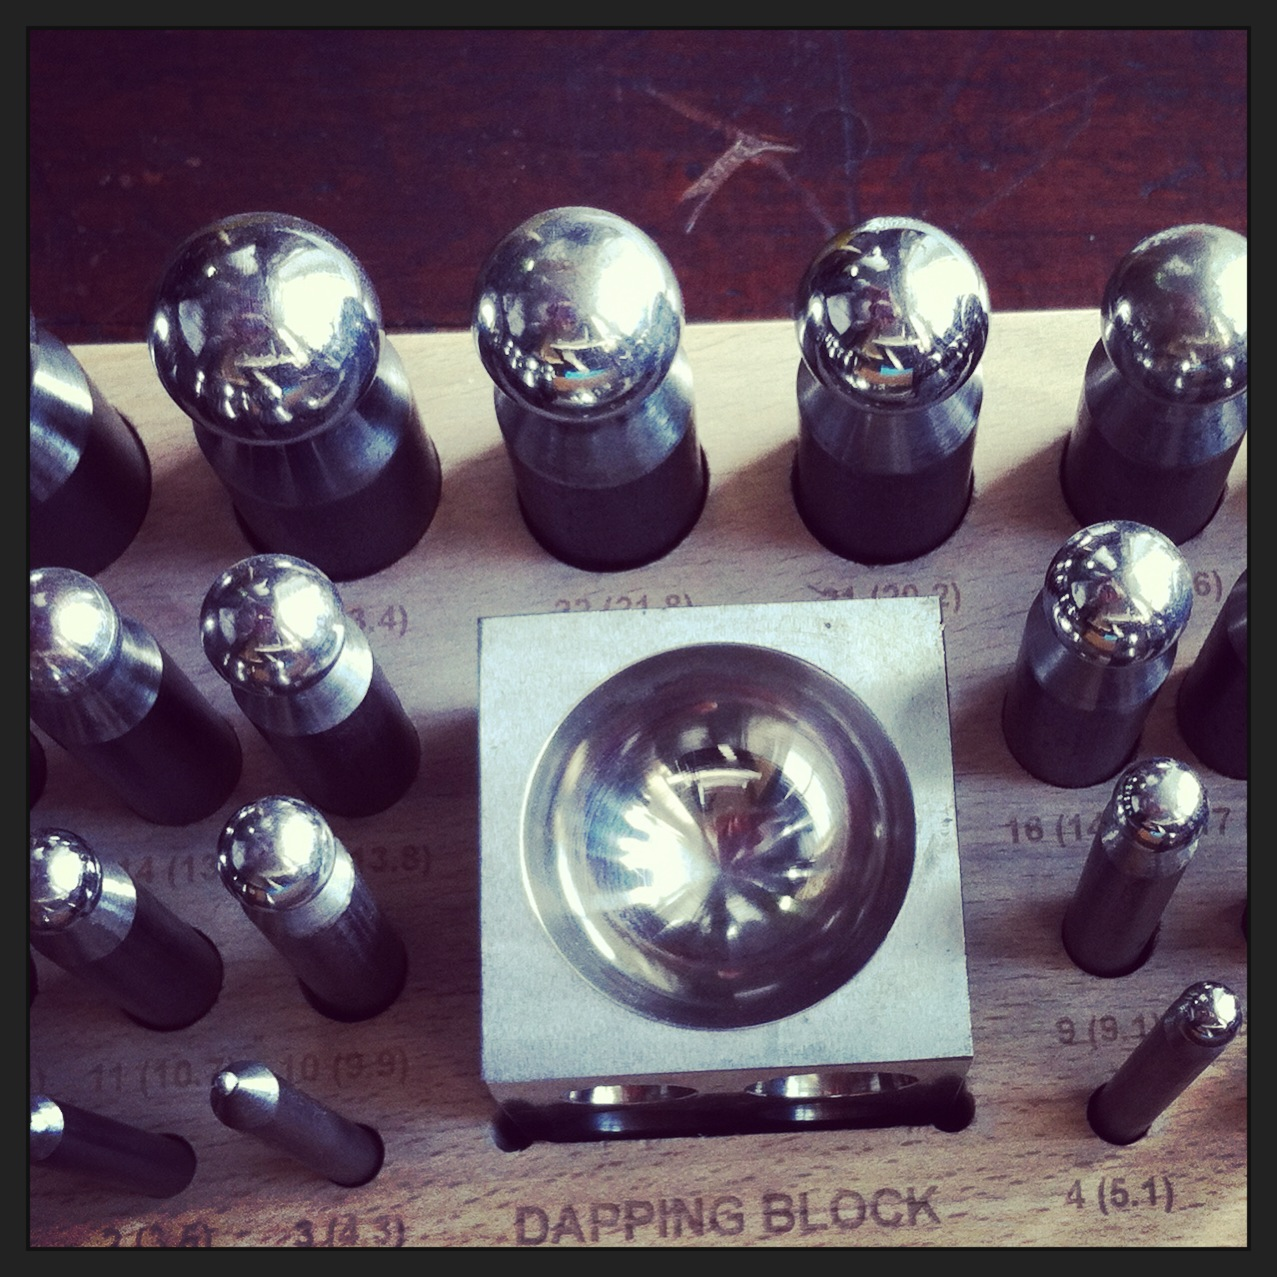 Oh yes - lovely shiny bits of steel #dapping_block